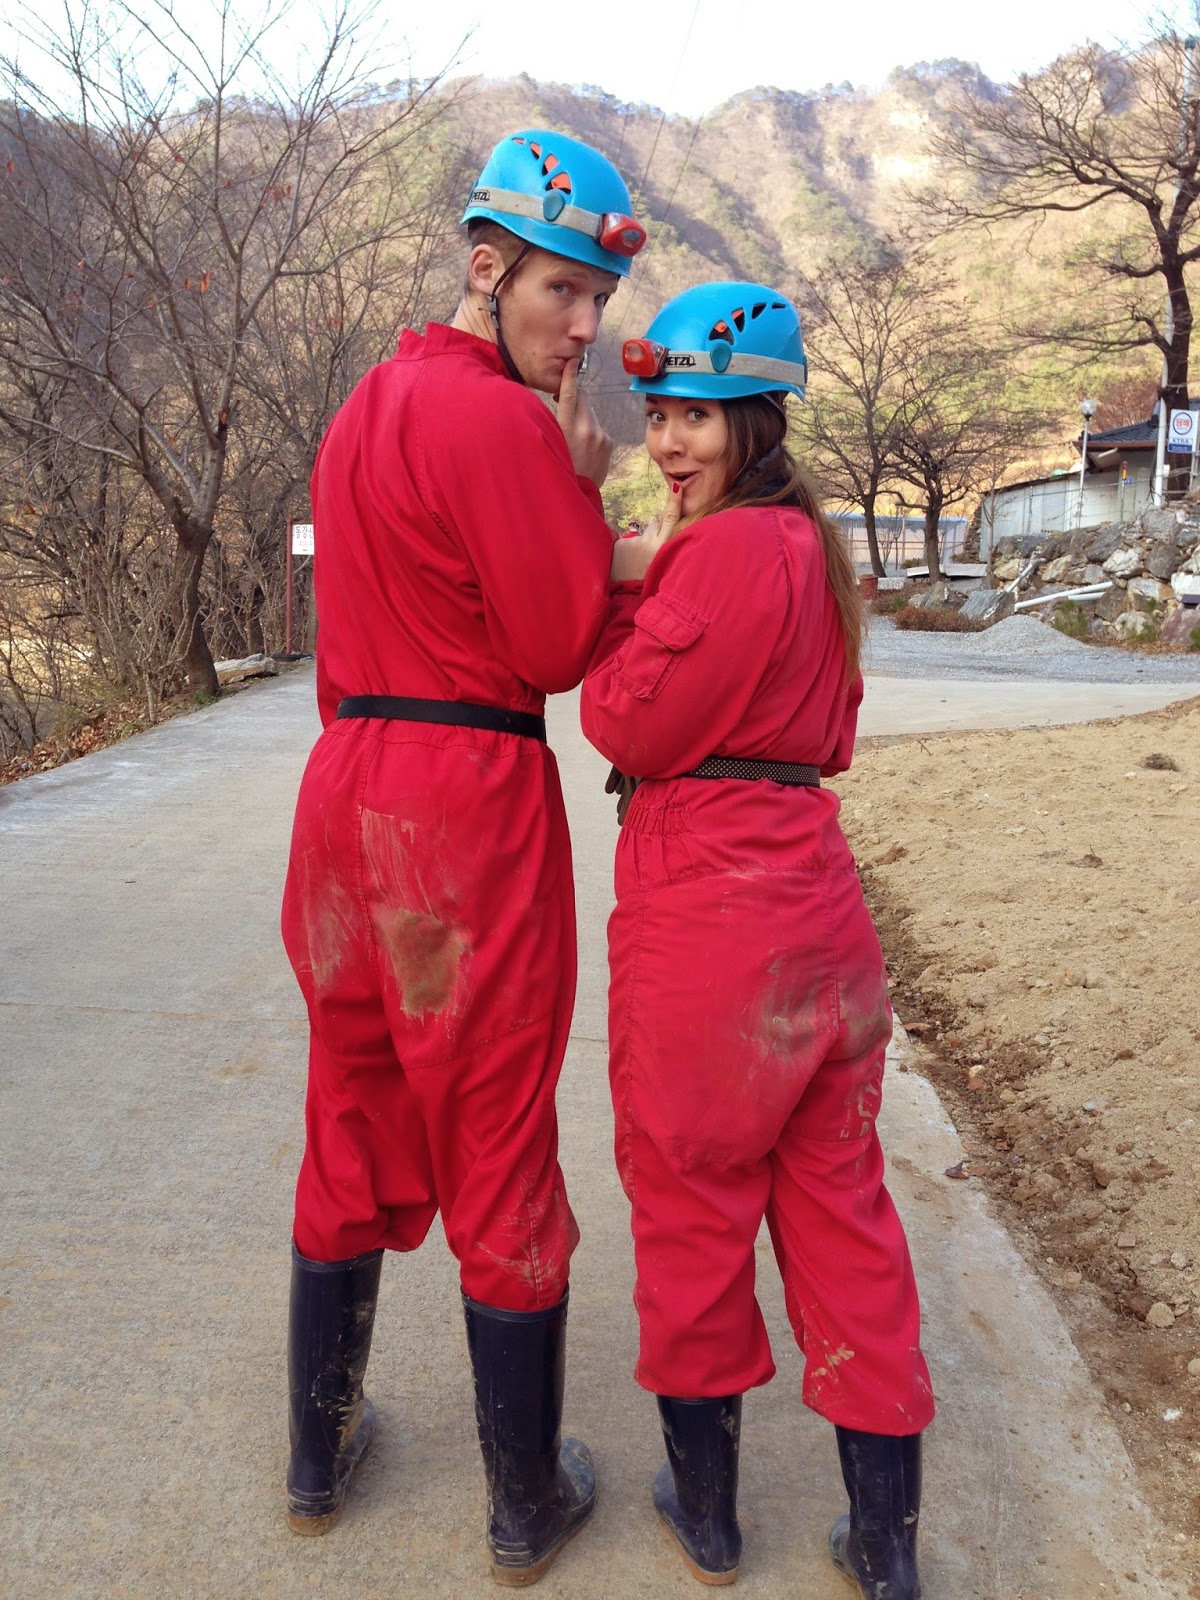 It was a good thing they gave us jumpsuits, because all the crawling on the cave floors left us pretty dirty!